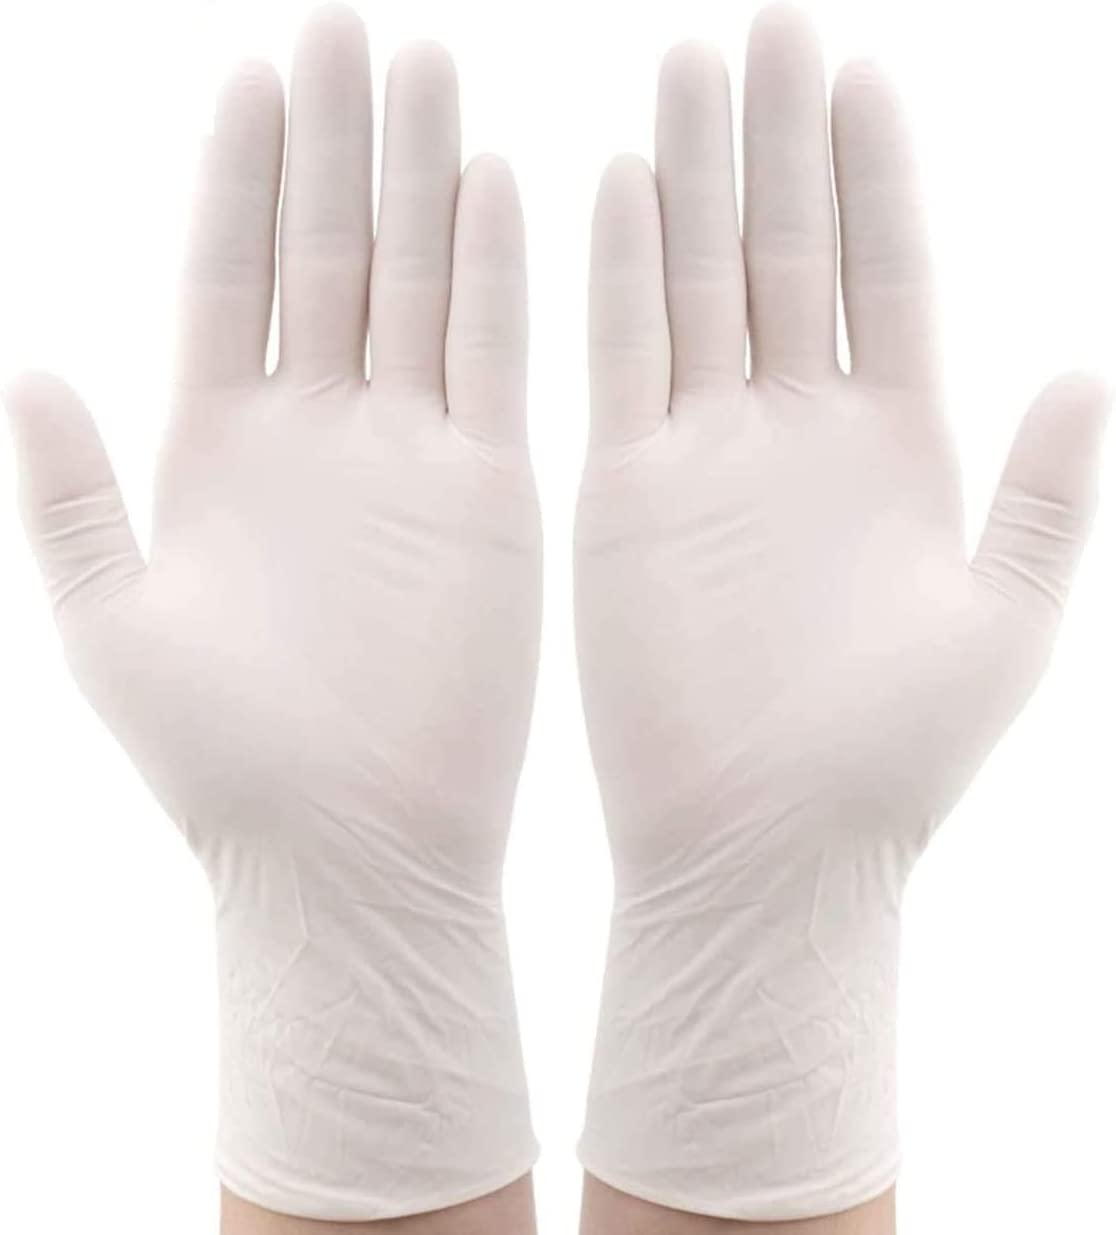 Protective Disposable Latex Gloves